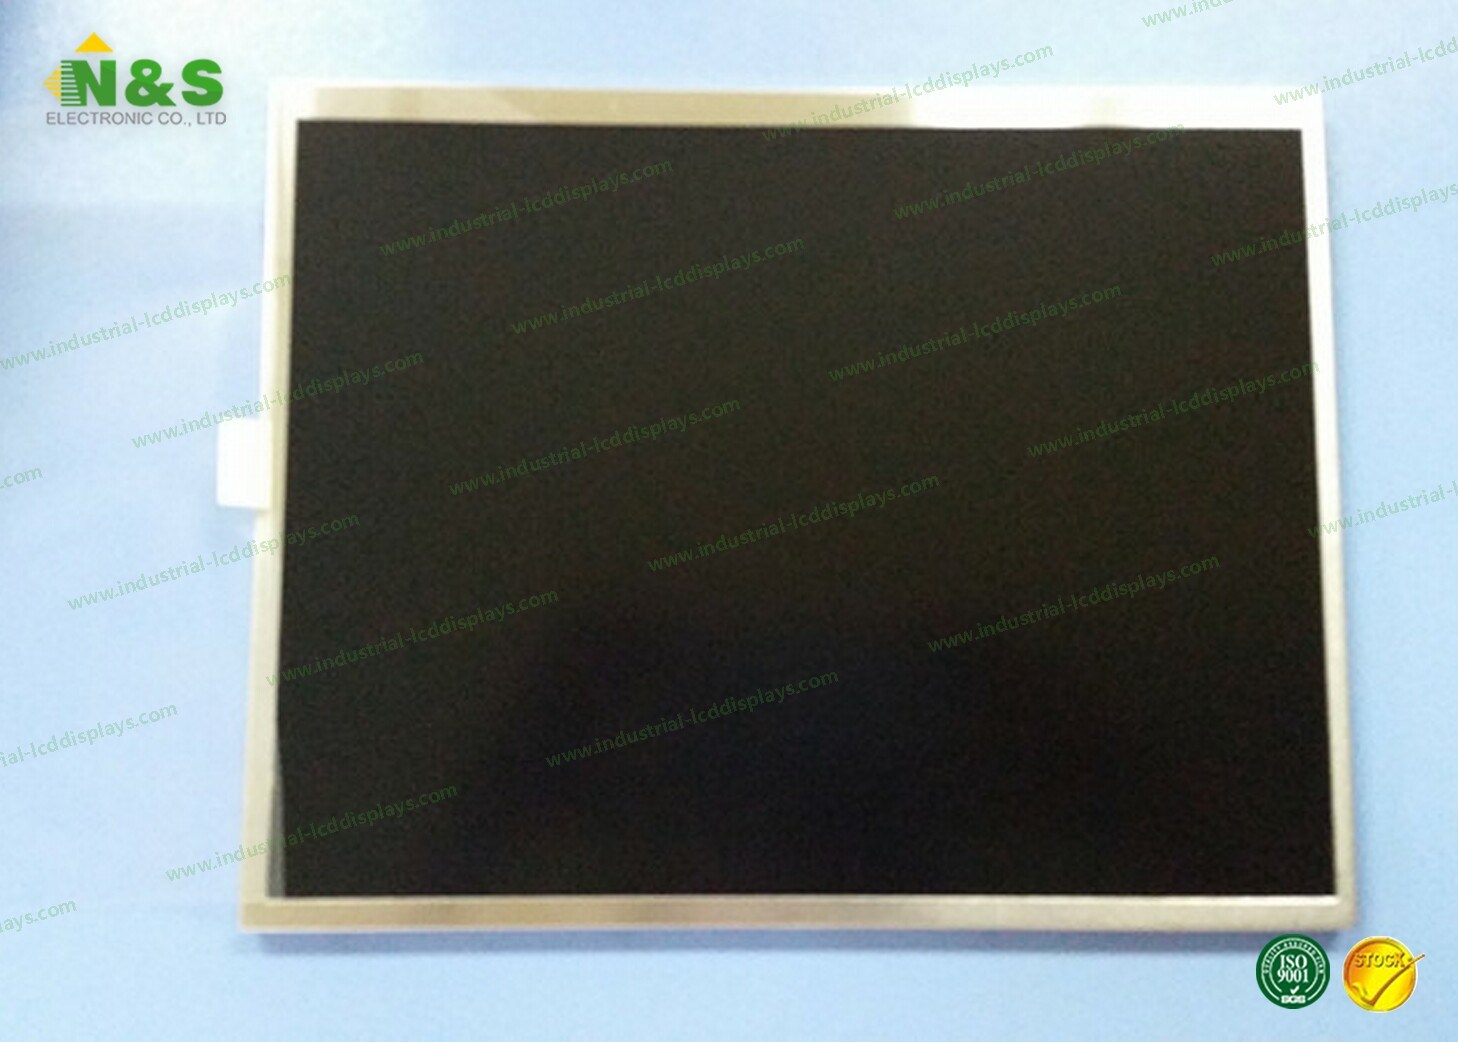 G121age-L03 12.1 Inch LCD Display Module